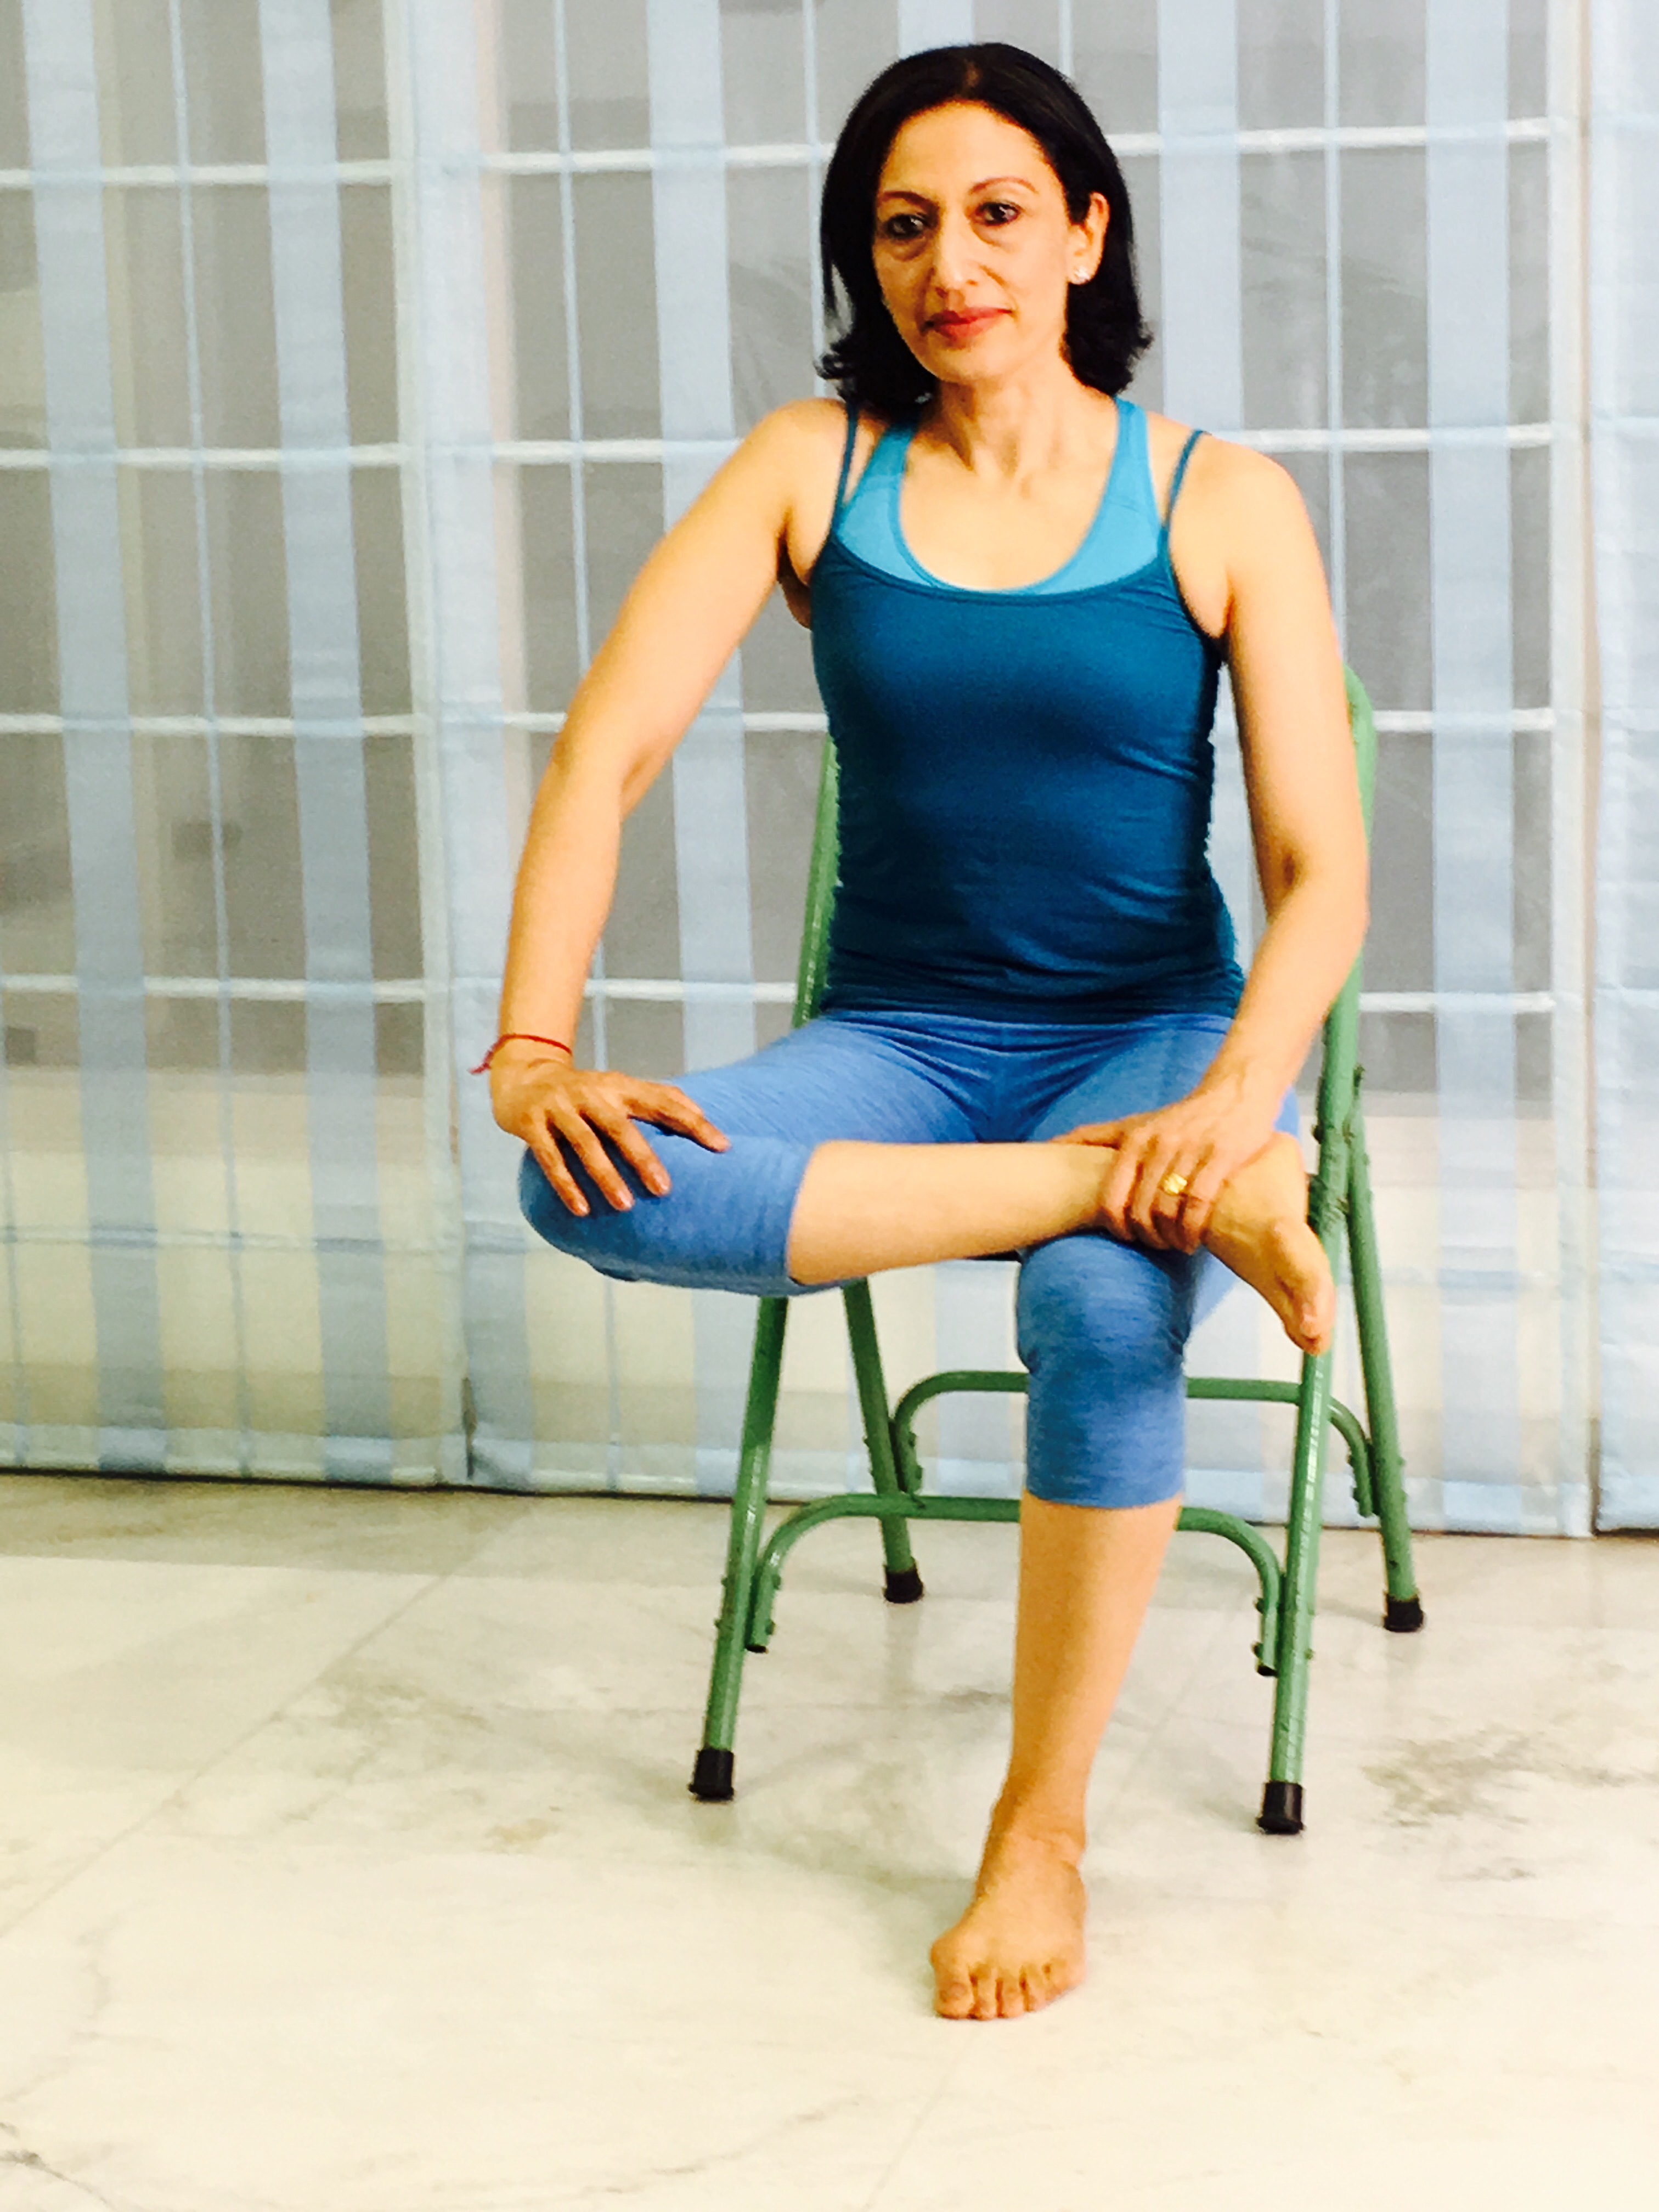 Knee-to-ankle pose